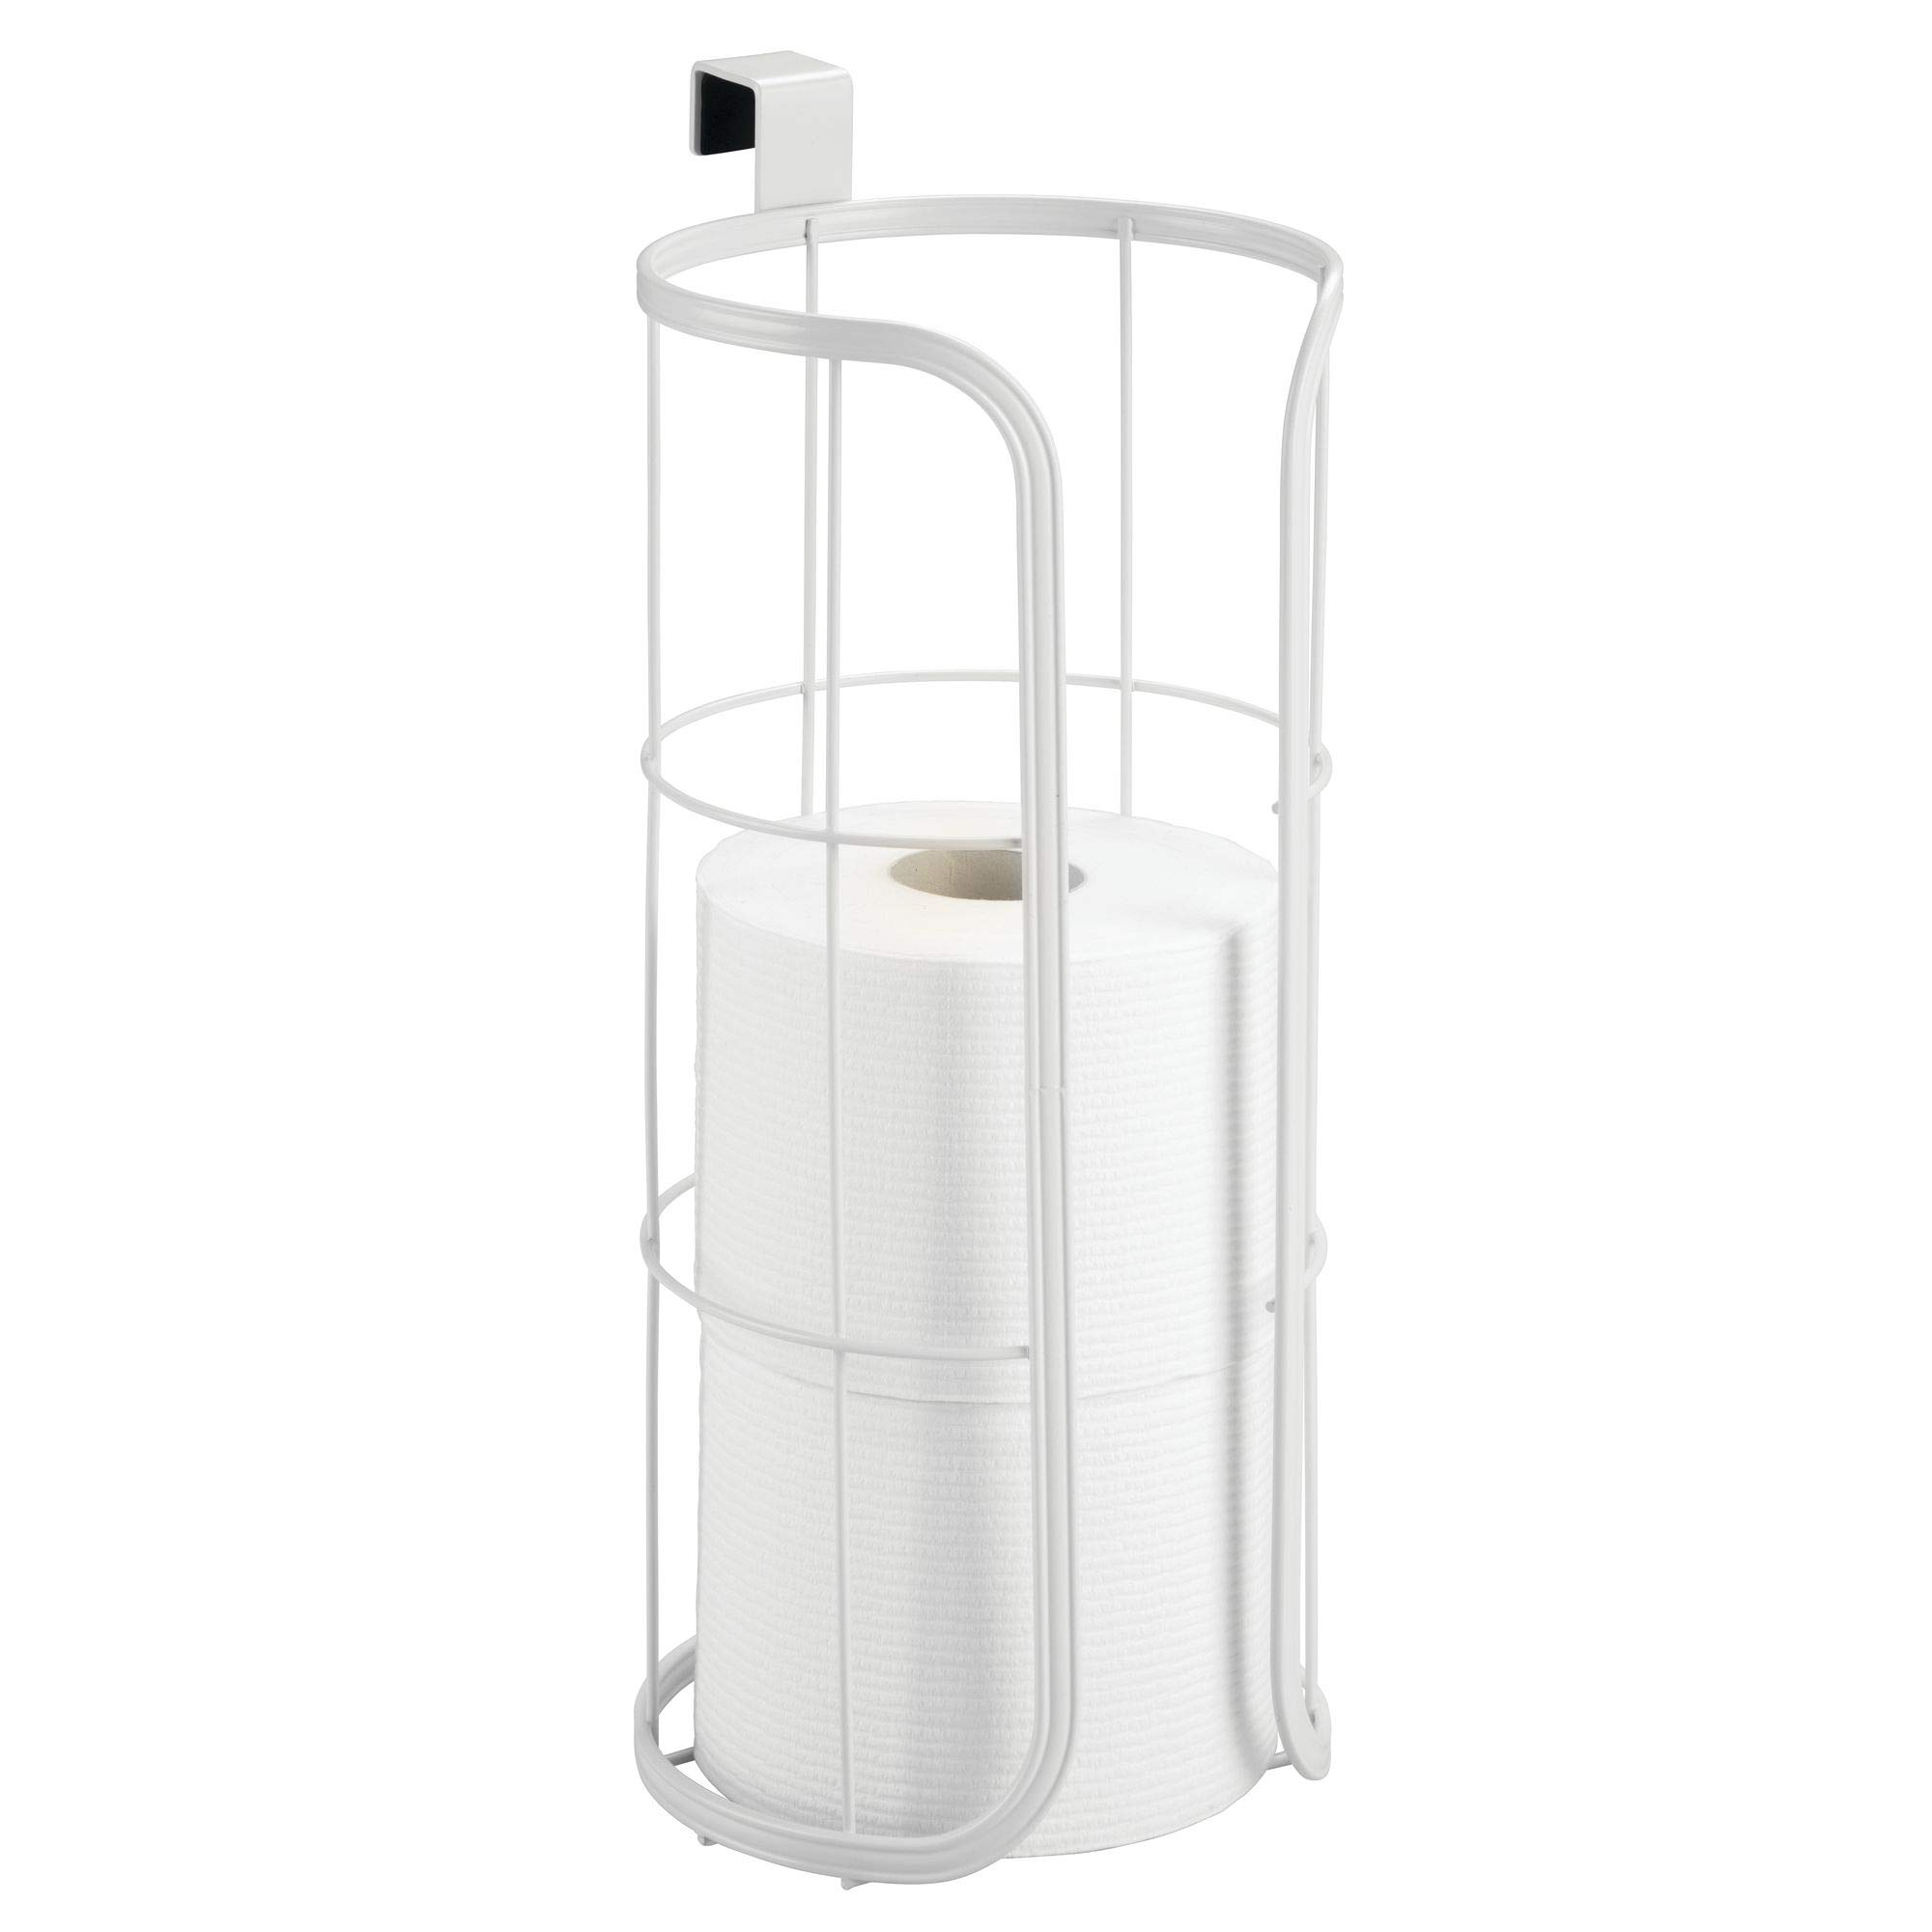 mDesign Modern Over the Tank Hanging Toilet Tissue Paper Roll Holder and Reserve for Bathroom Storage and Organization - Stores Three Extra Rolls, Holds Jumbo-Sized Rolls - Durable Metal Wire in White